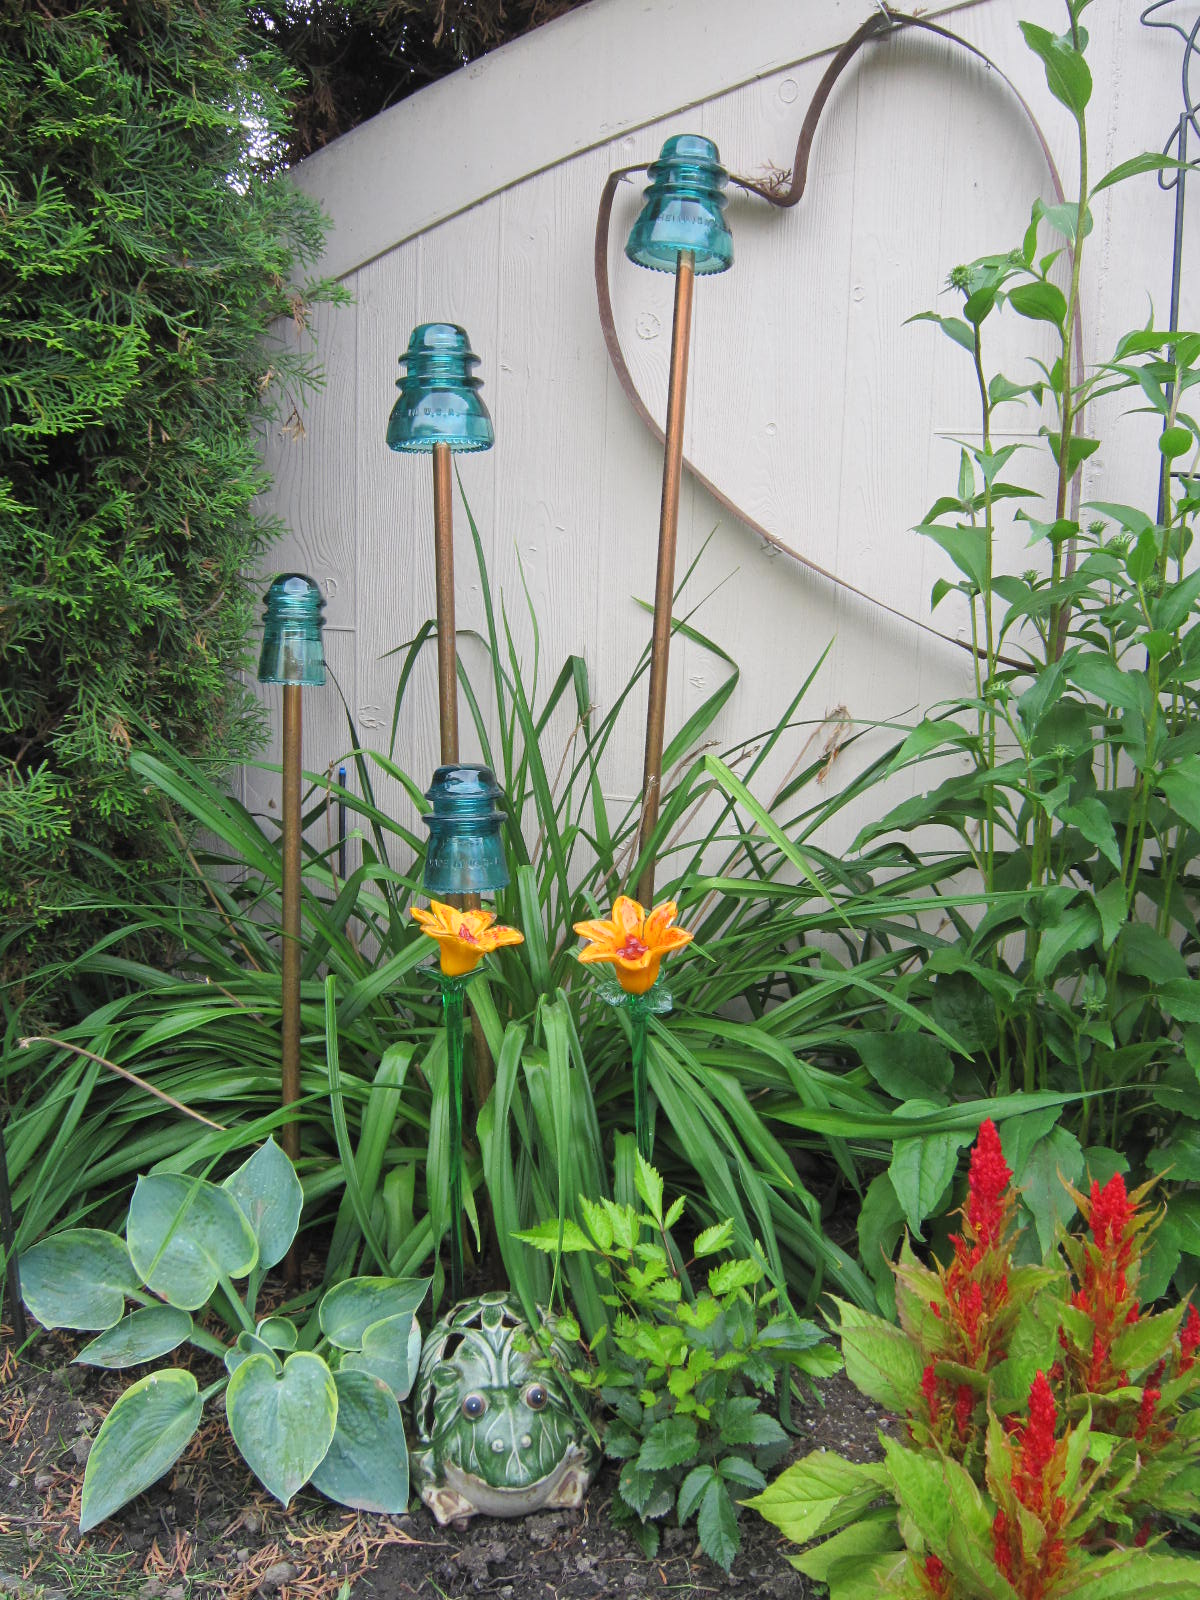 Dishfunctional Designs: The Upcycled Garden Volume 2